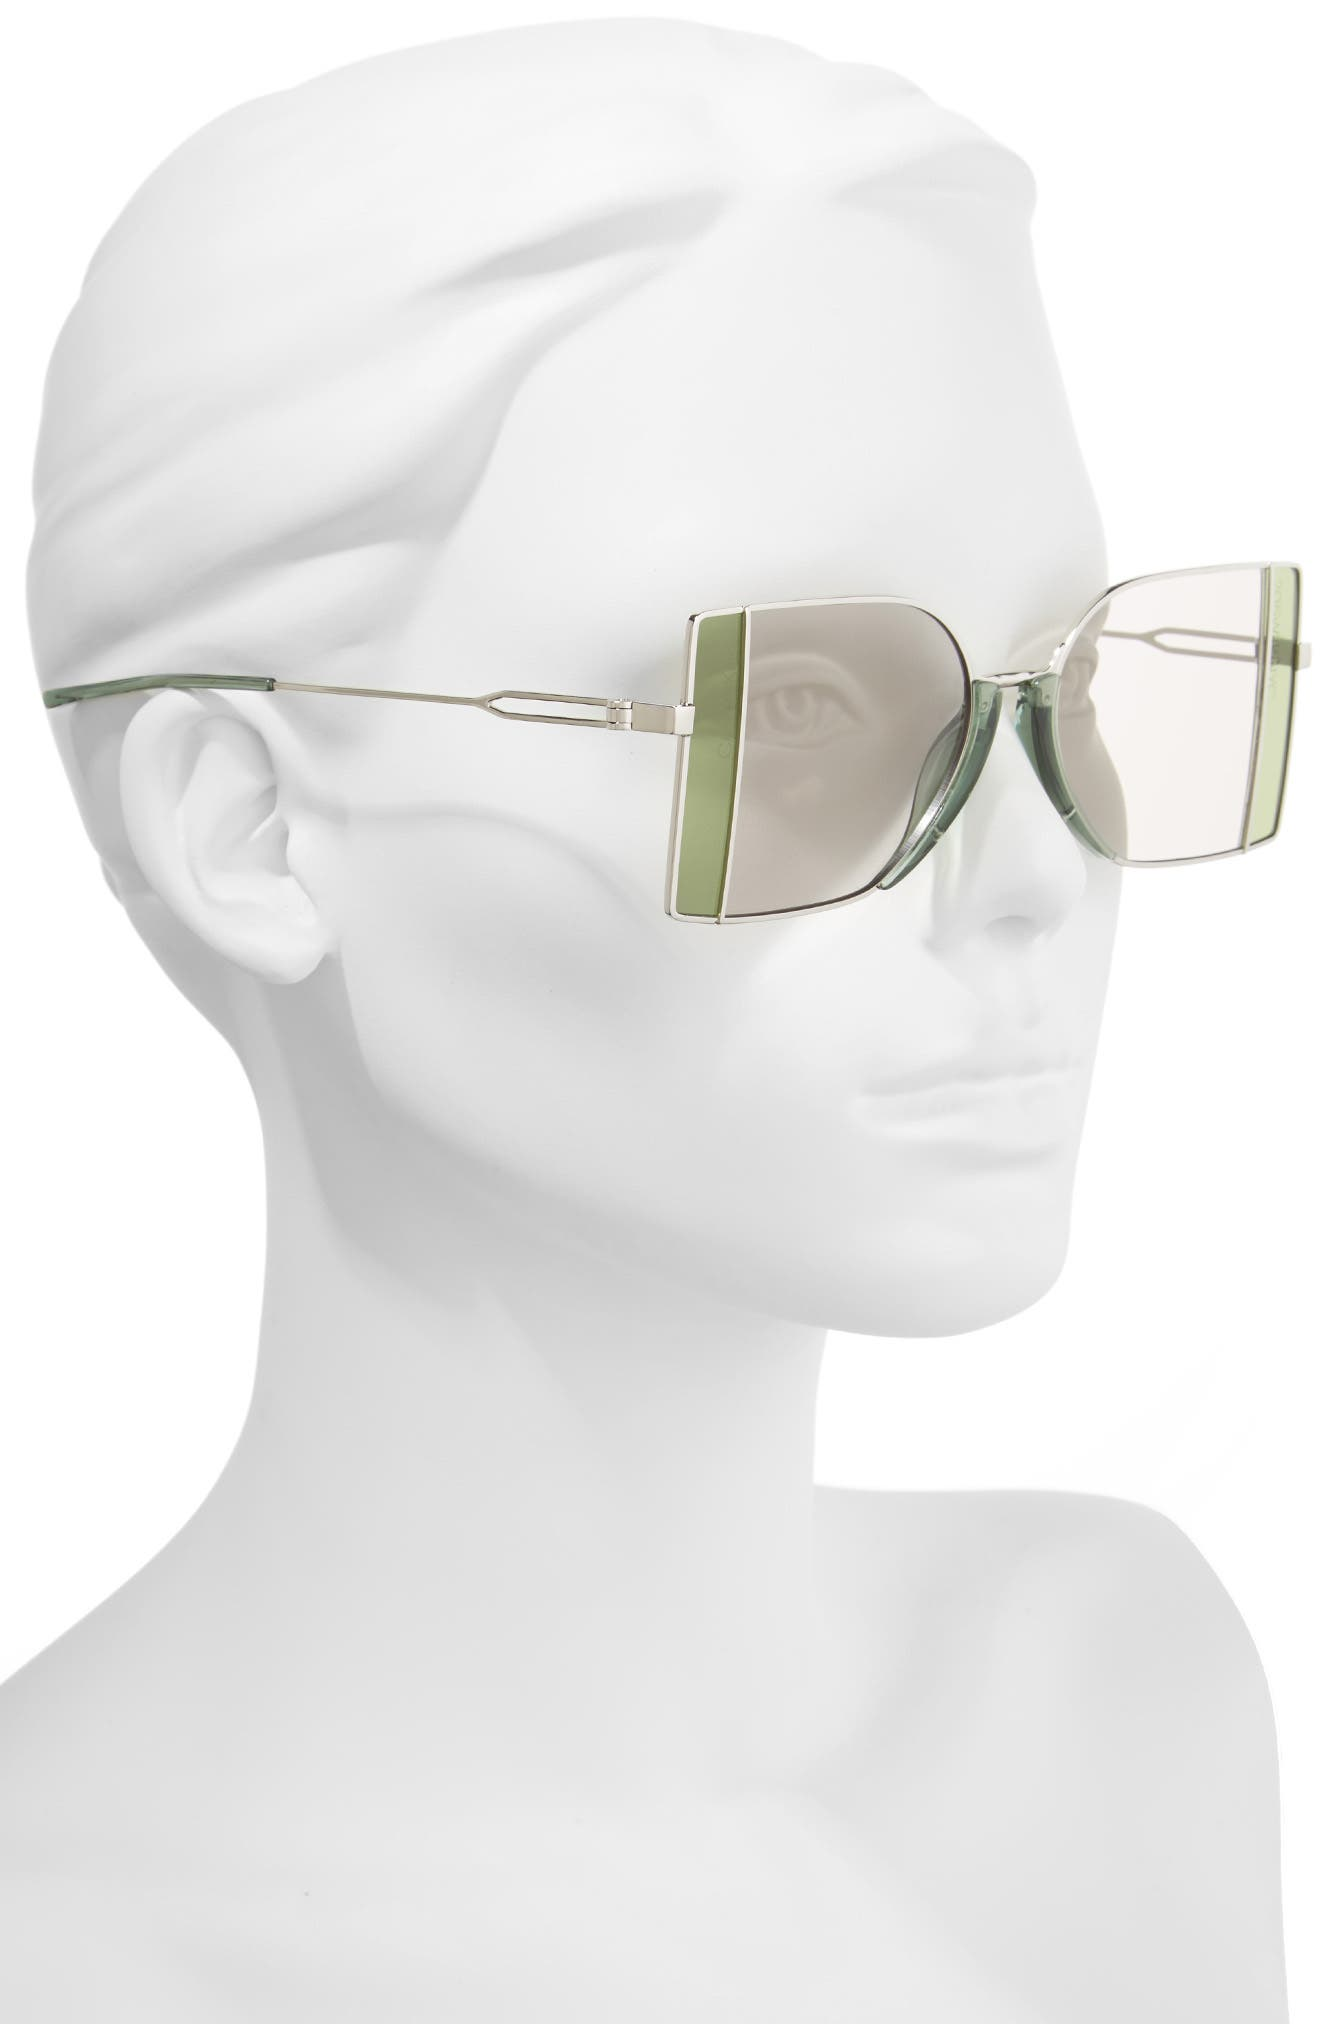 51mm Butterfly Sunglasses,                             Alternate thumbnail 2, color,                             041